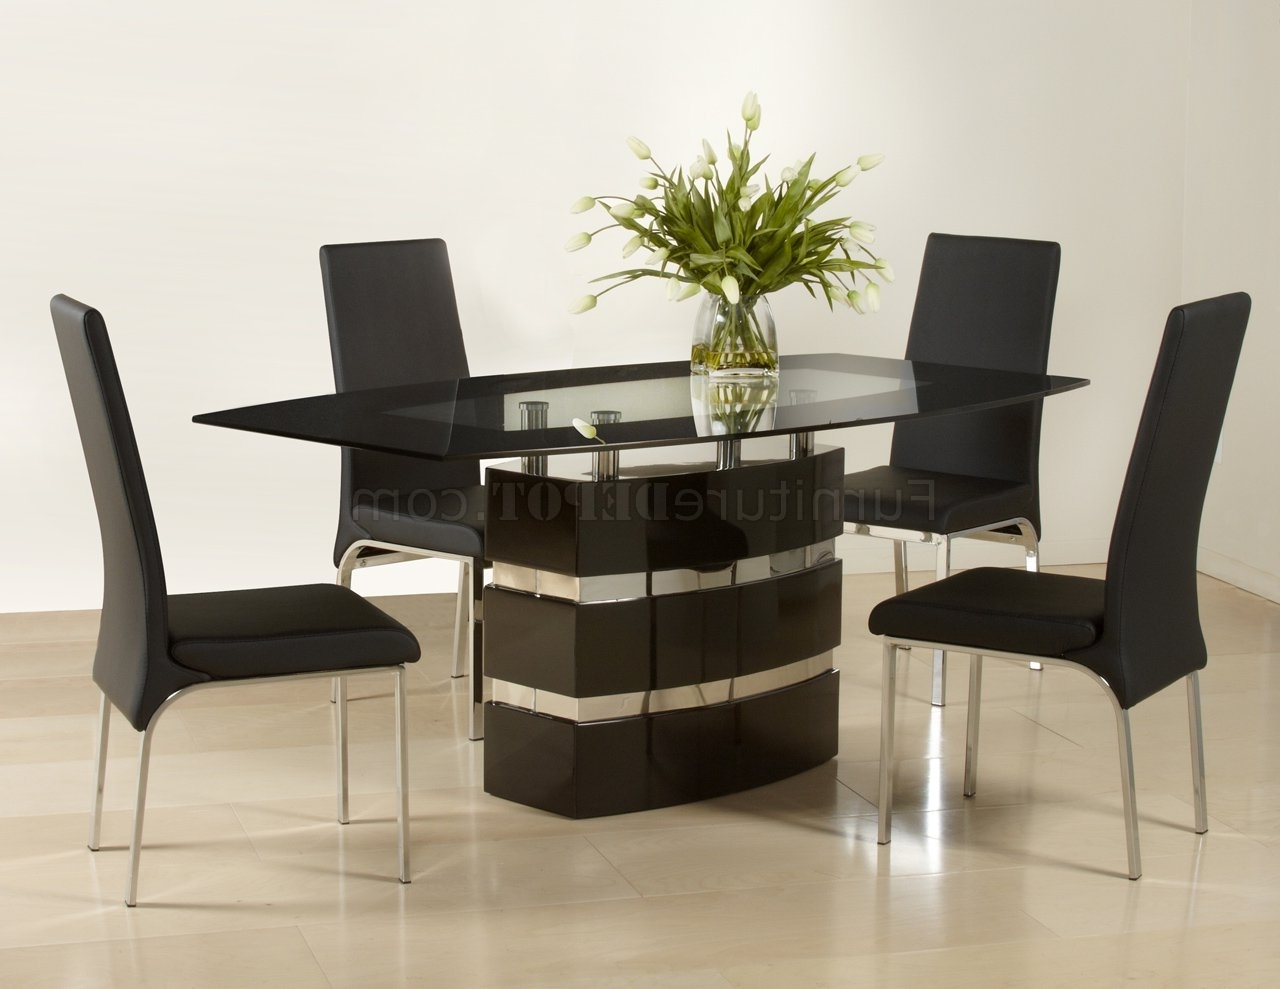 Black High Gloss Finish Modern Dining Table W/optional Chairs With Latest Black High Gloss Dining Tables And Chairs (Gallery 15 of 25)